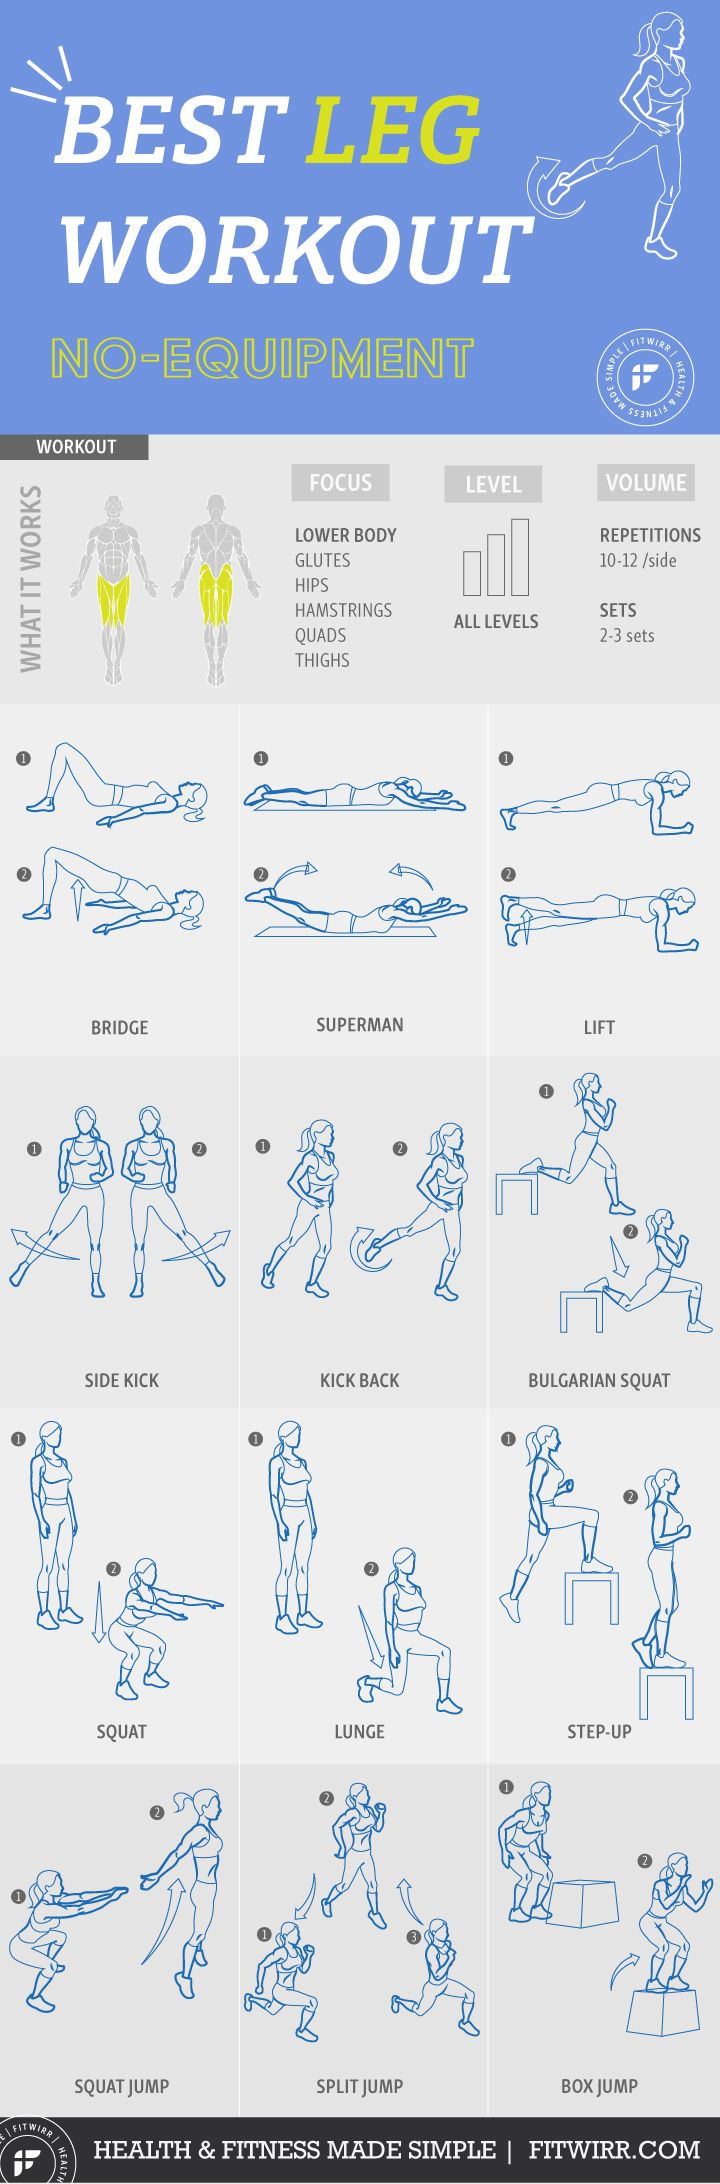 legs workout Here are leg exercises you can do at home with just a set of used dumbbells as well as complete leg workouts strong legs keep you healthy and injury free.